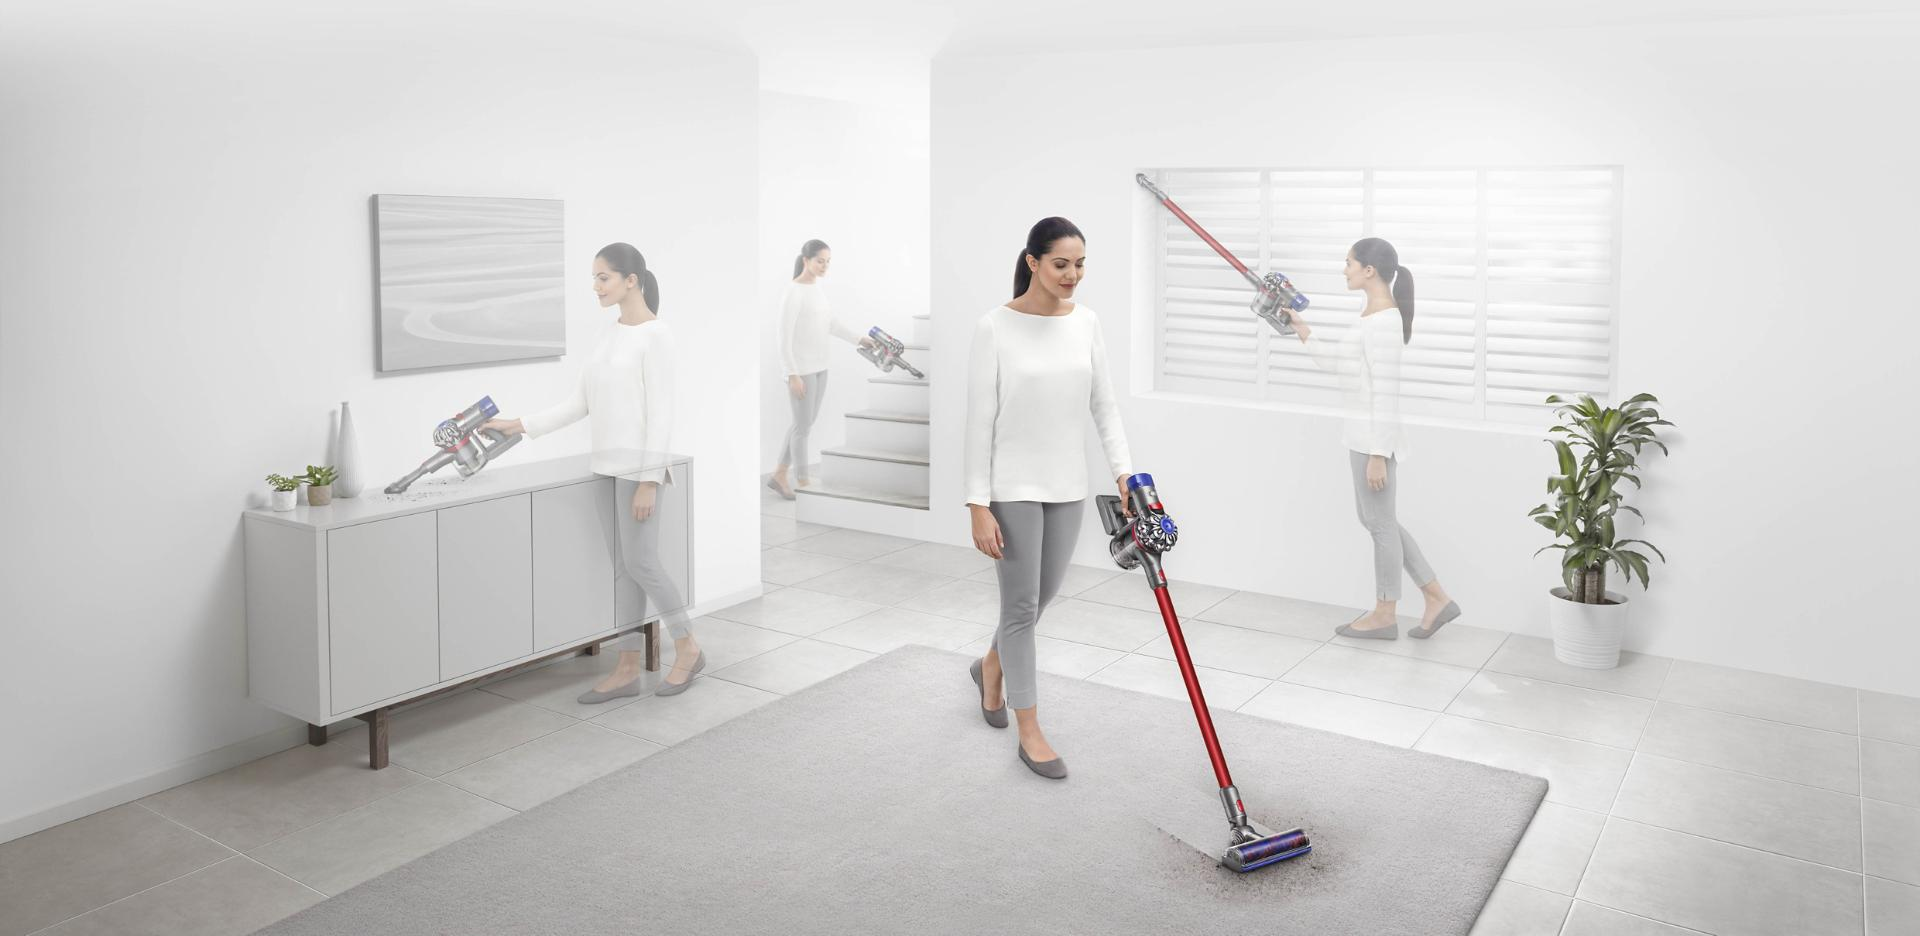 Woman using Dyson V7 vacuum cleaner in three different scenarios around the home